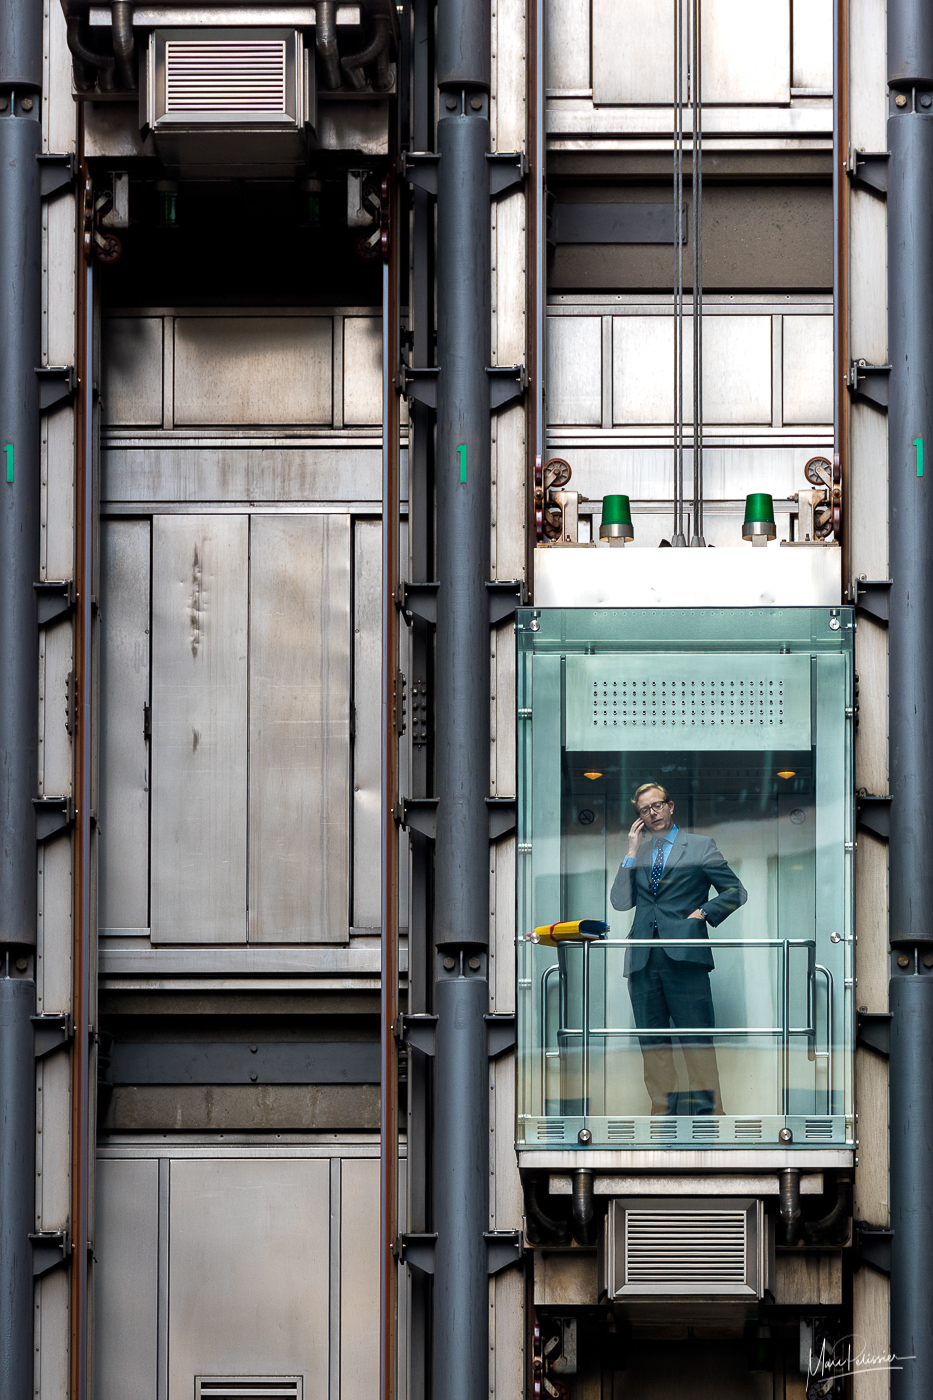 LIoyds elevators near leadenhall, United Kingdom